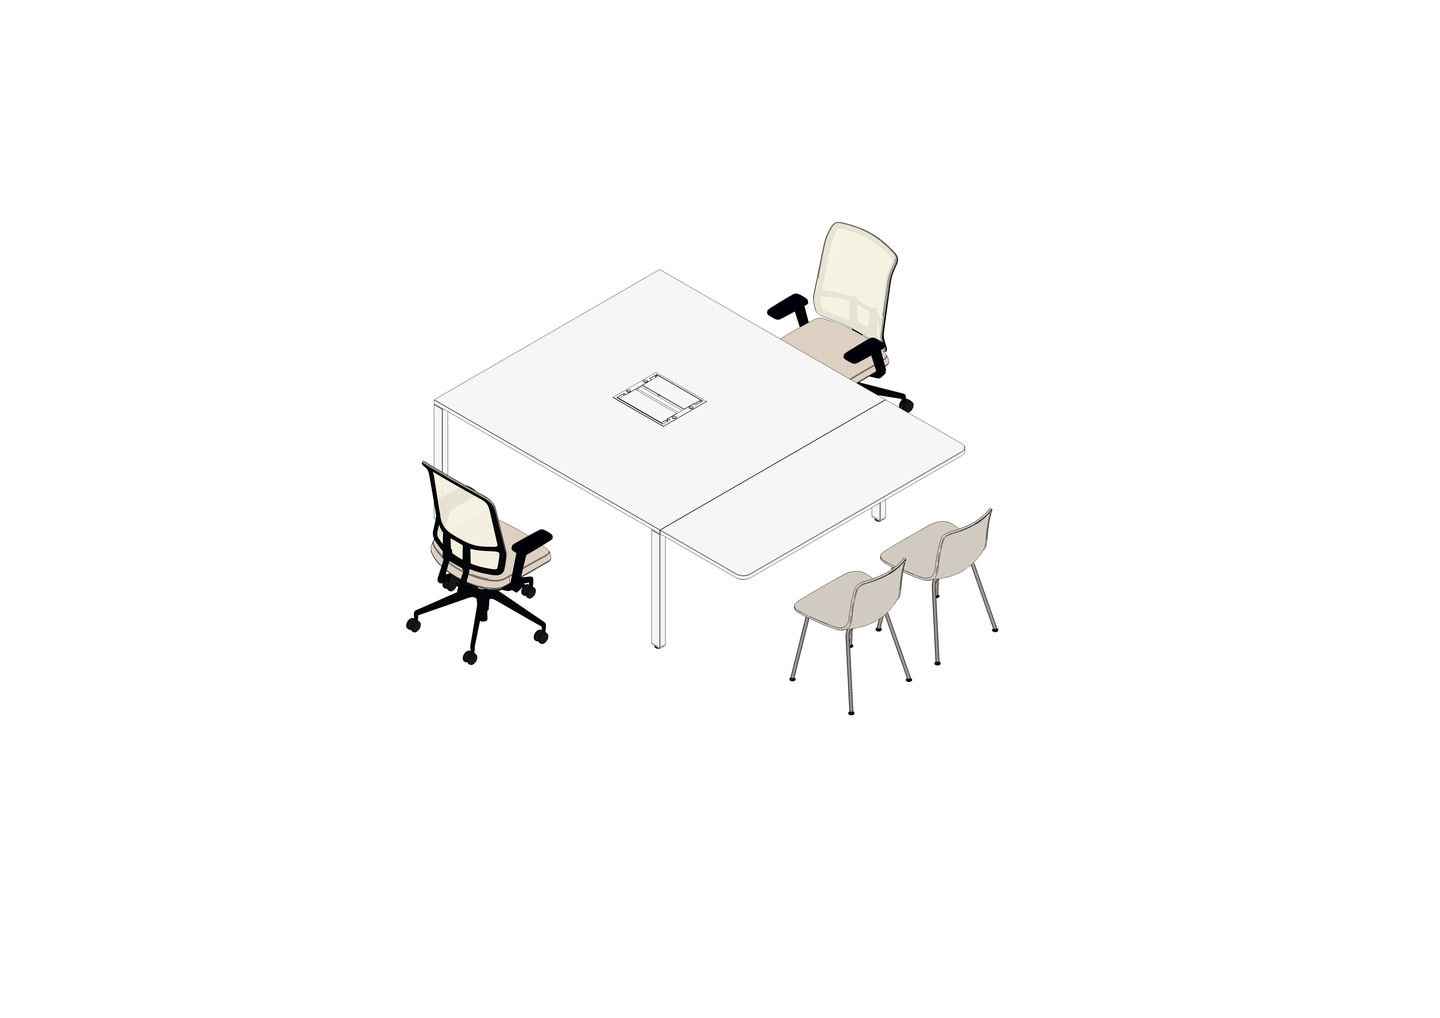 20 - WorKit 160 x 160 mit End Table 160 x 60, AM Chair, HAL Tube-3D